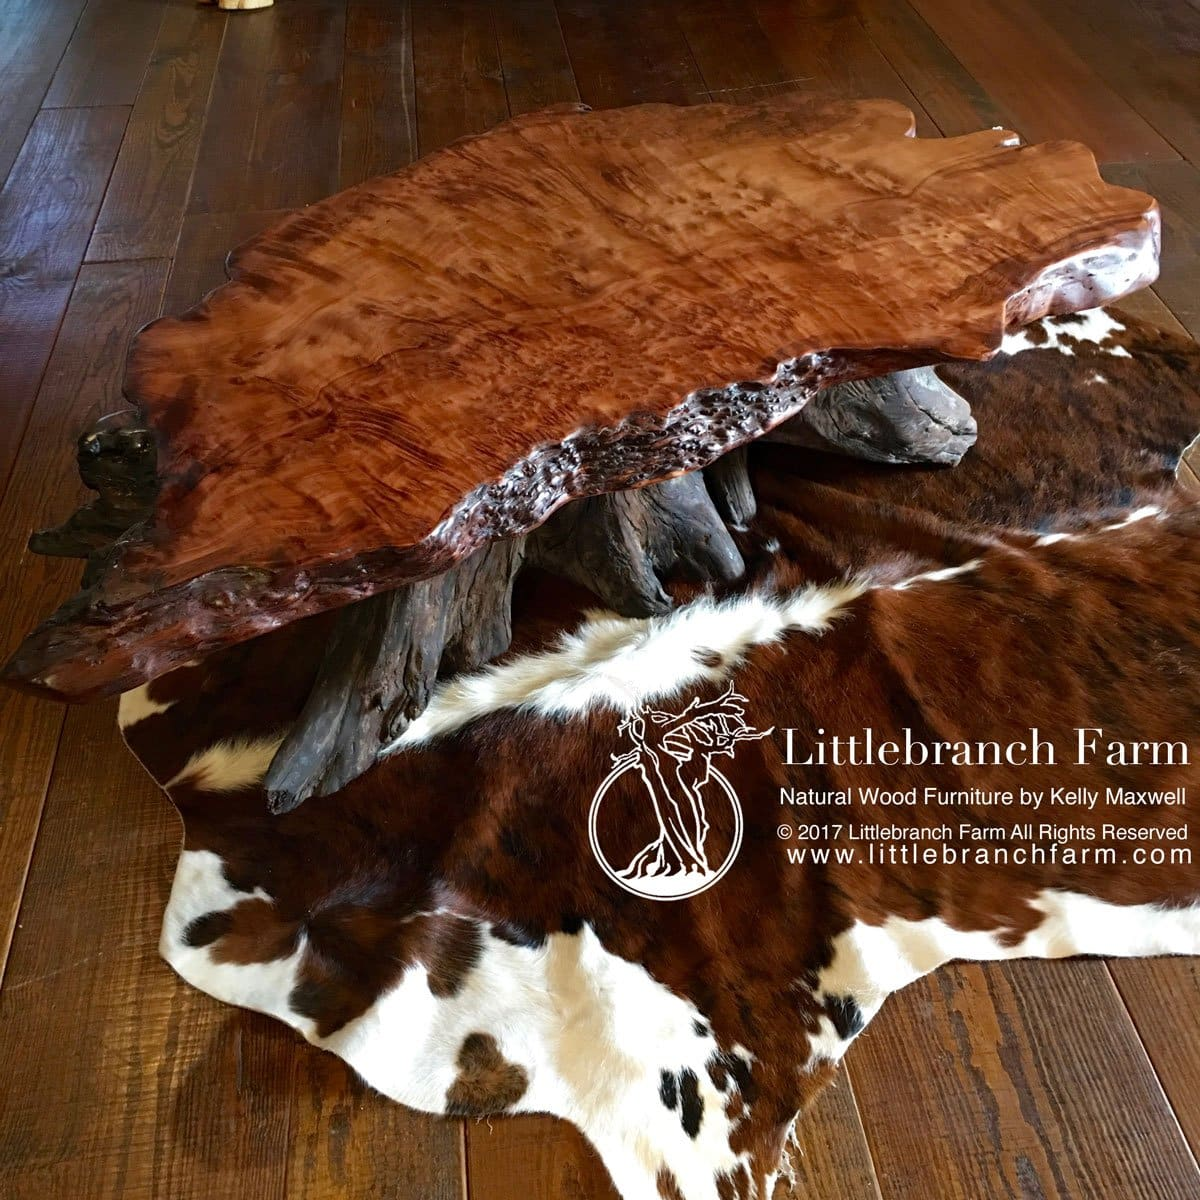 Redwood burl rustic furniture